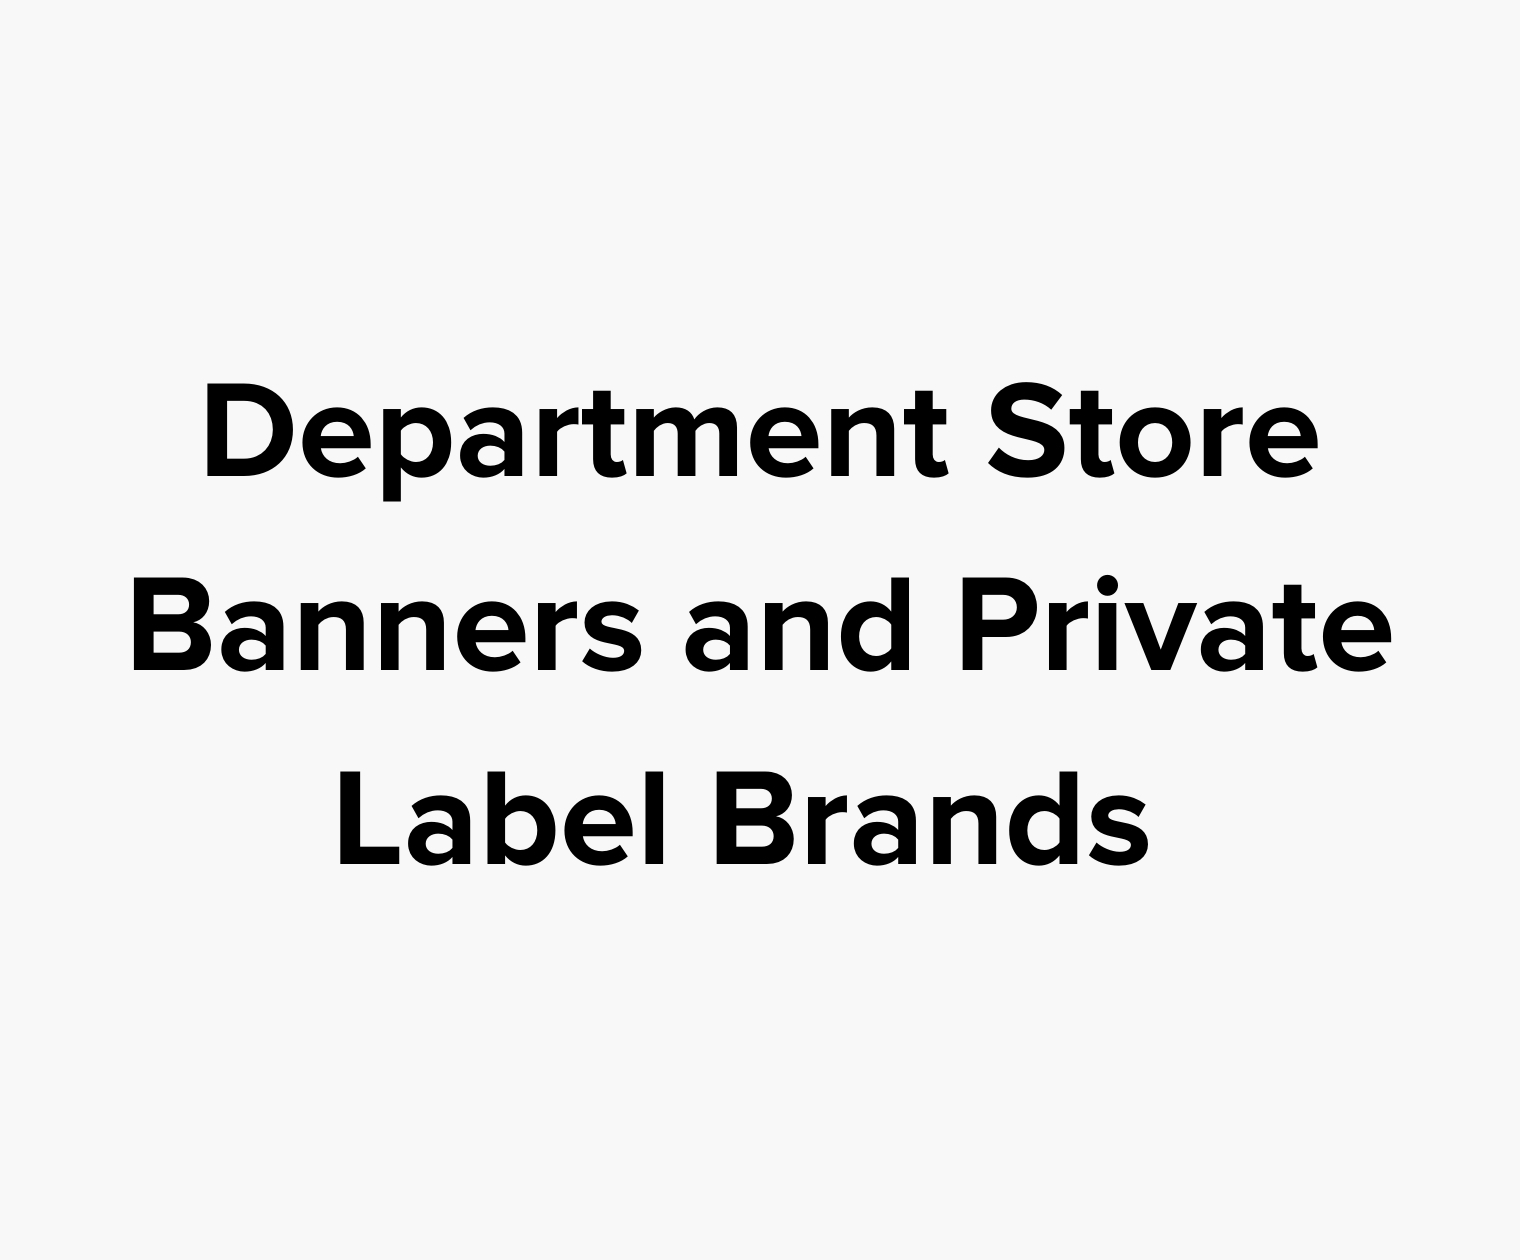 Department Store Banners and Private Label Brands